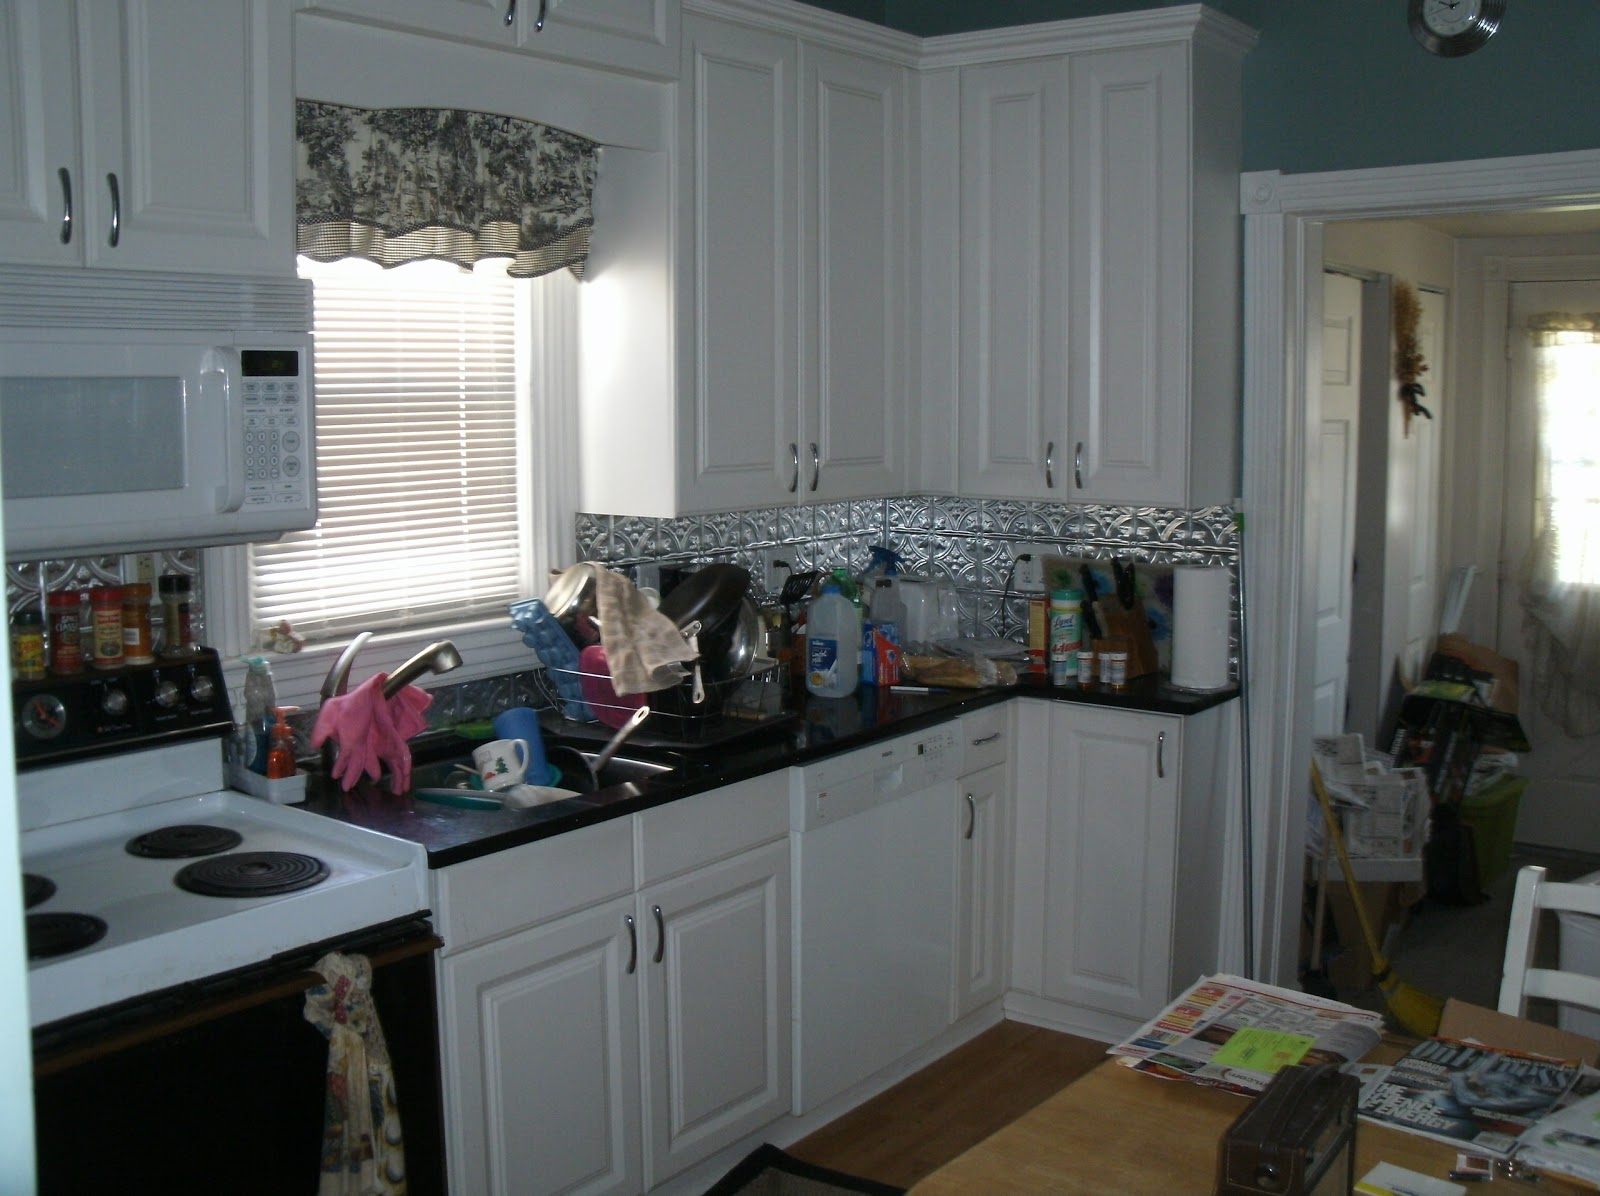 kitchen remodel ideas for older homes | Home Painting